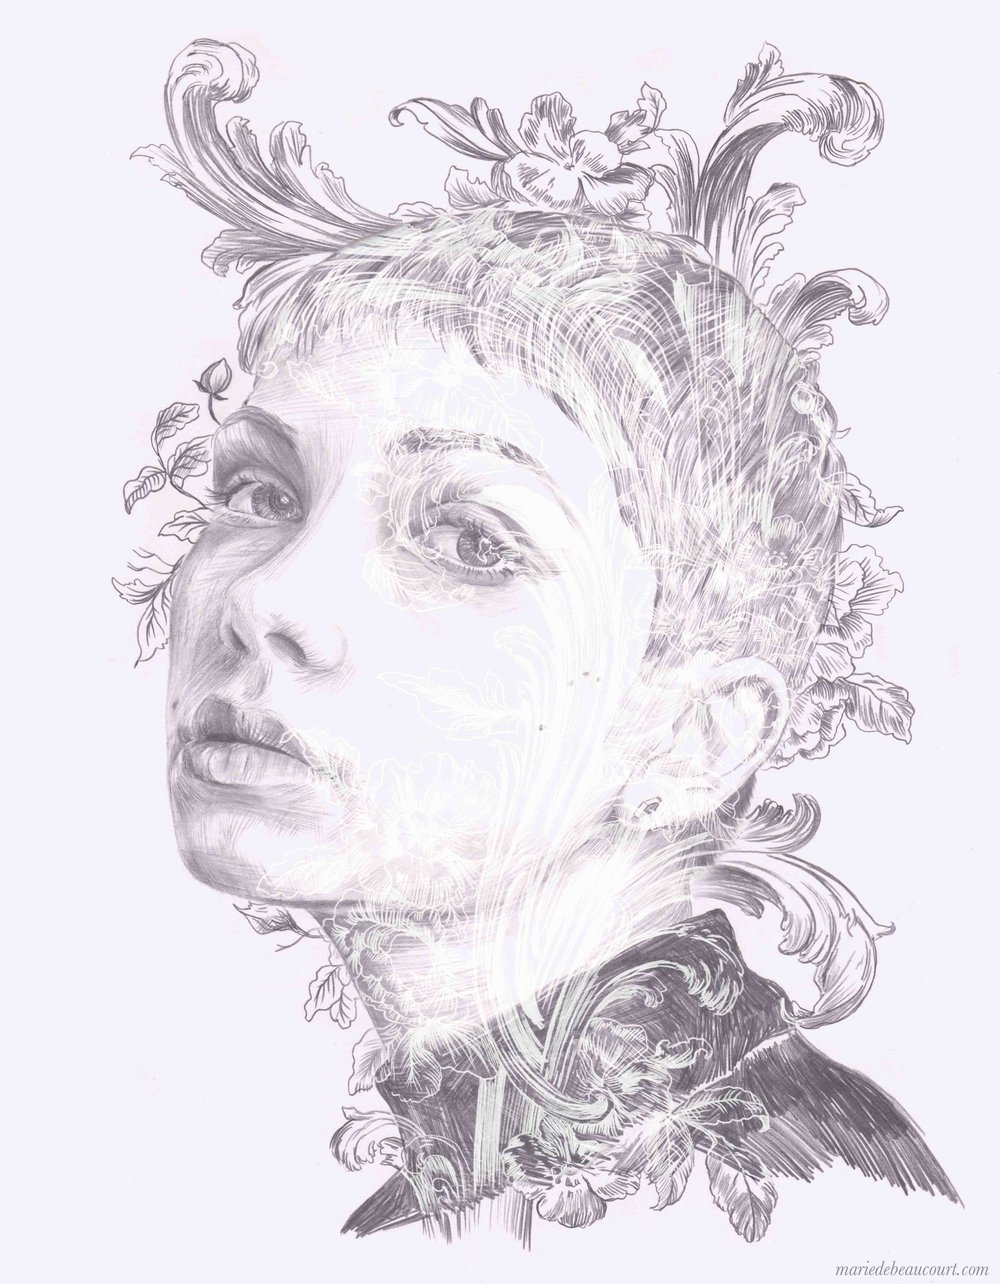 marie-de-beaucourt-portrait-illustration-Tavi-2017-web.jpg